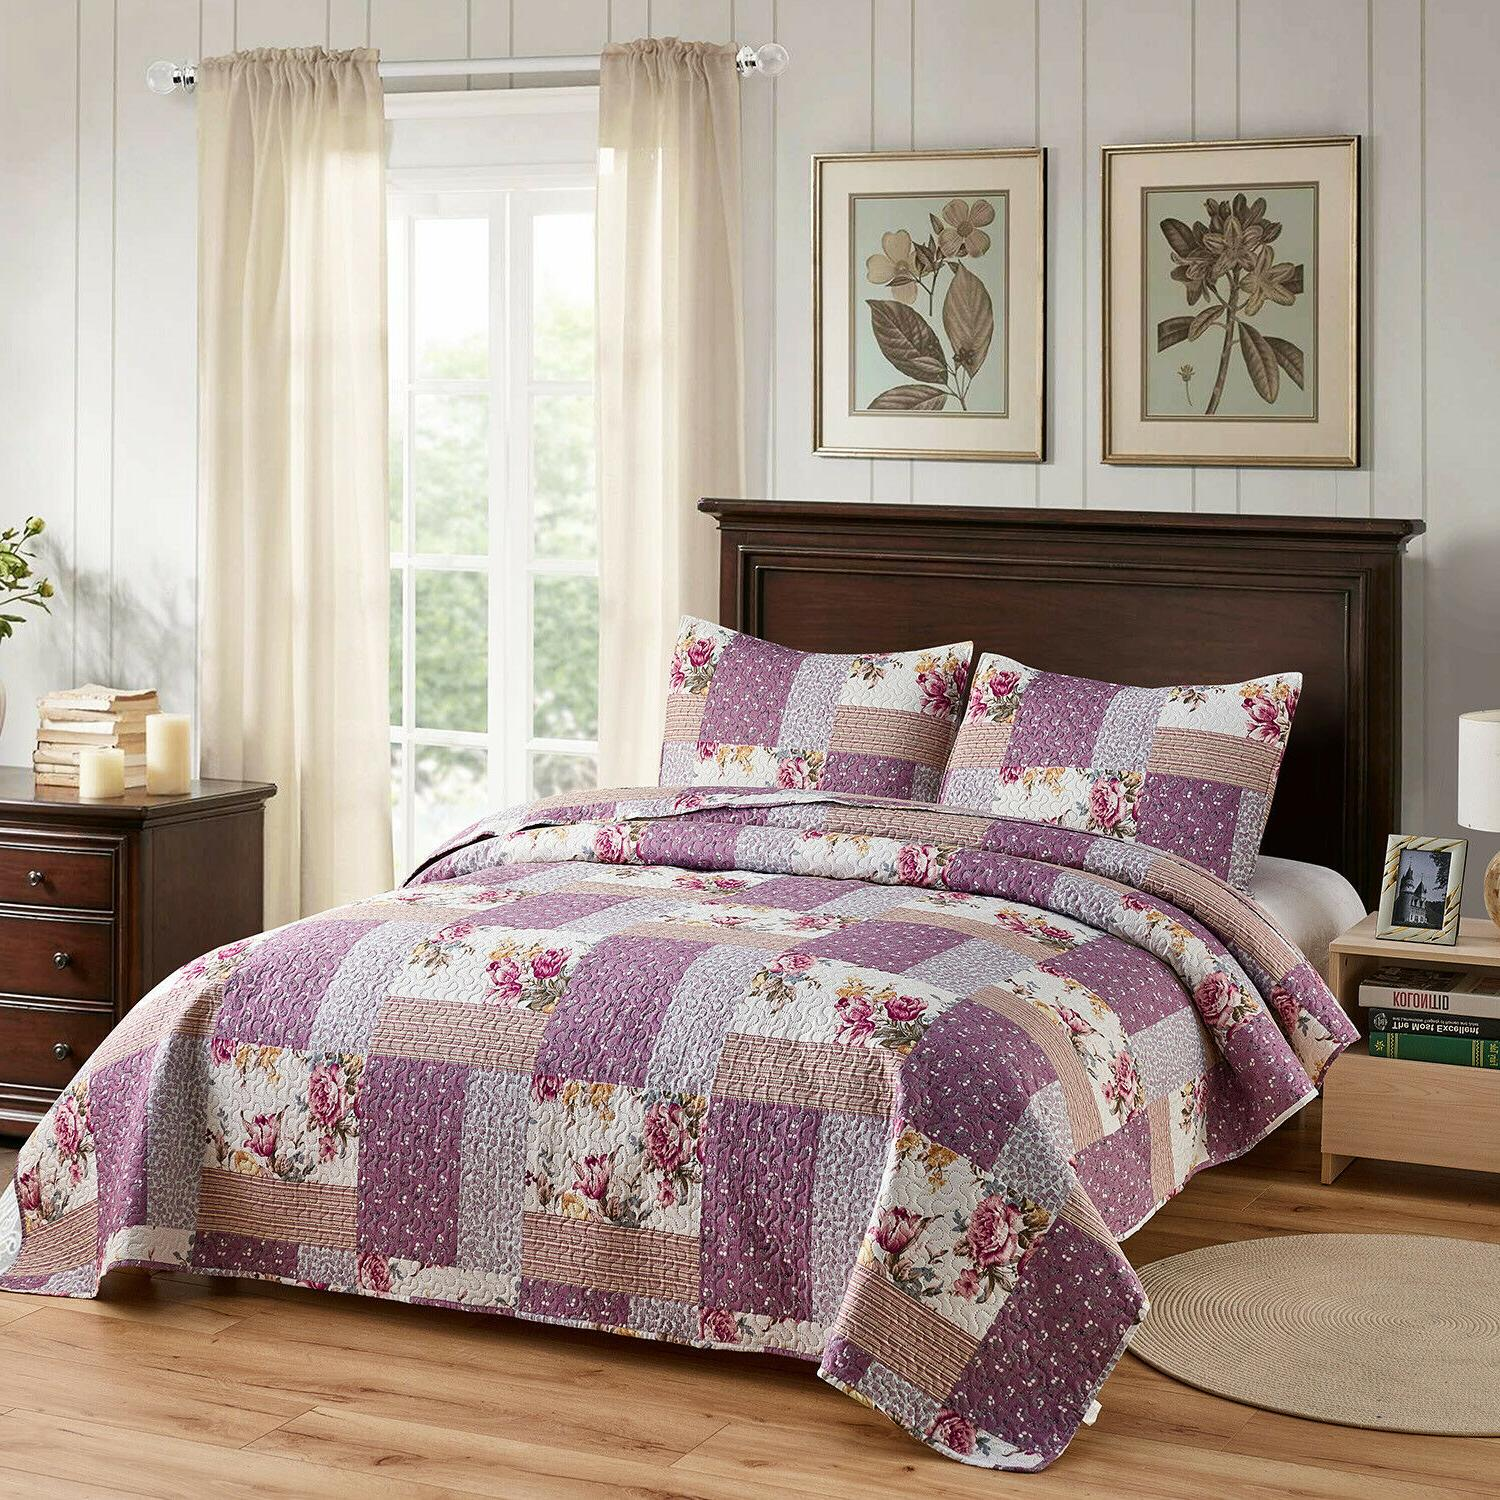 3pc Plaid Printed Bedspread/Quilt